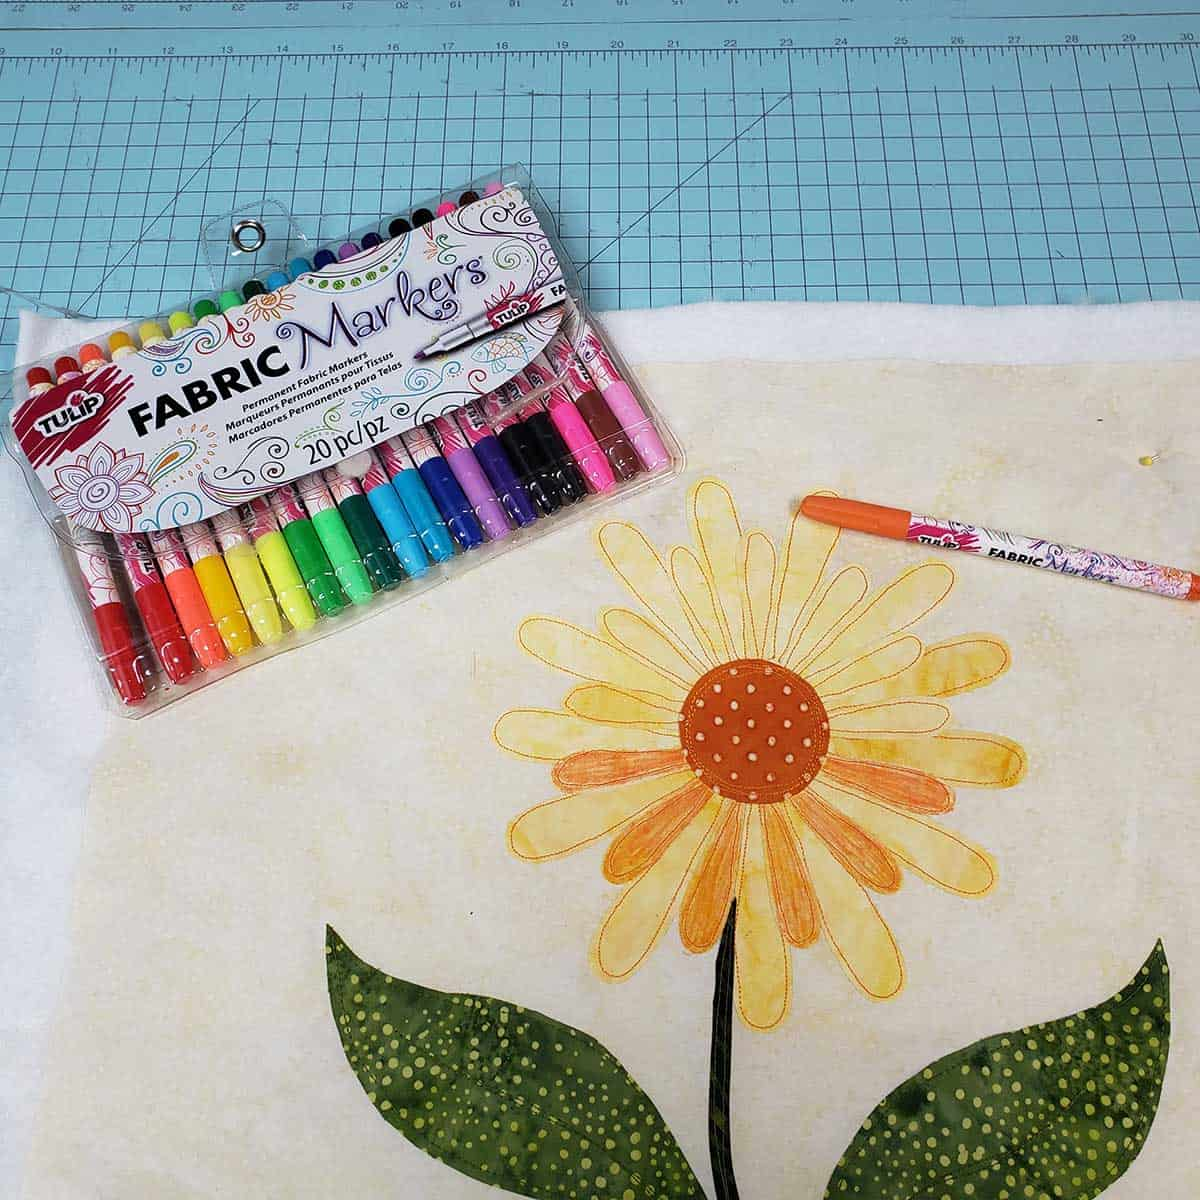 Starting to use the fabric markets on the applique